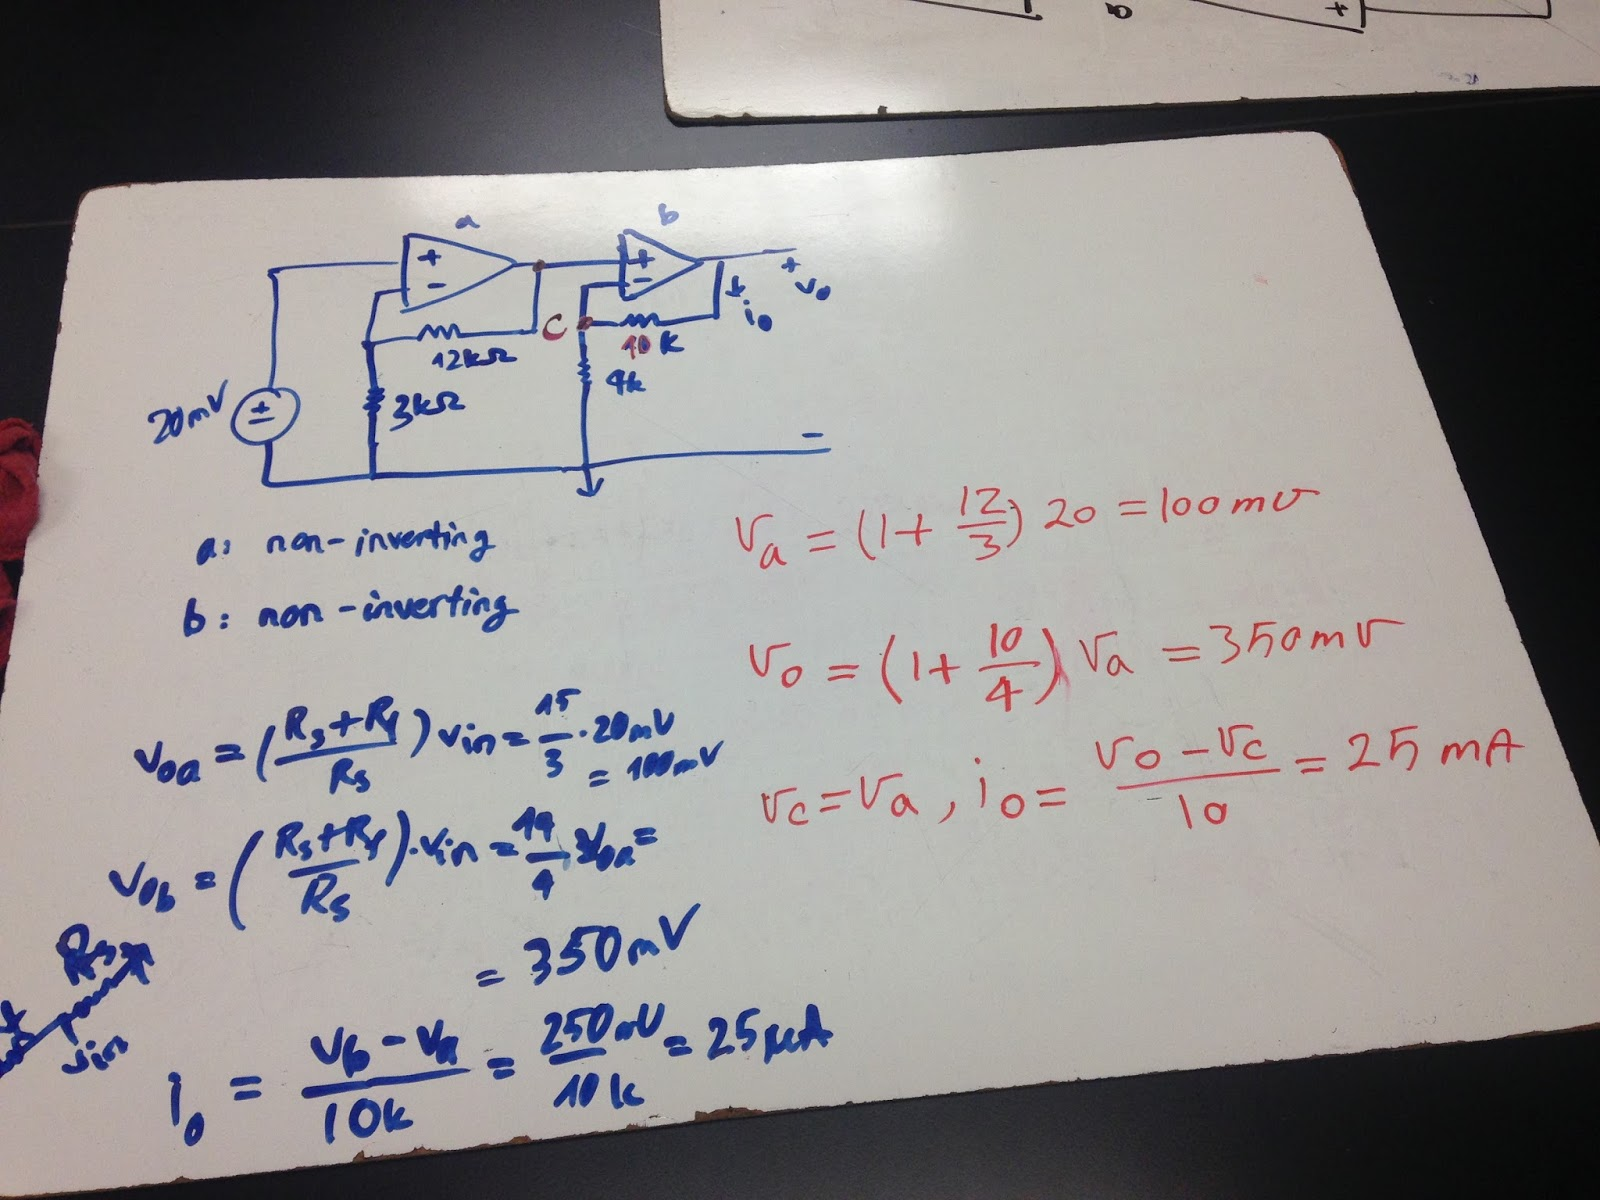 Engineering 44 Tnguyen Day 12 Cascaded Op Amps Temperature Amp Circuit Is The Noninverting Amplifier A Includes Two Non Inverting We Apply Formula Of For Each Vout Rf Rs Vin Deduce